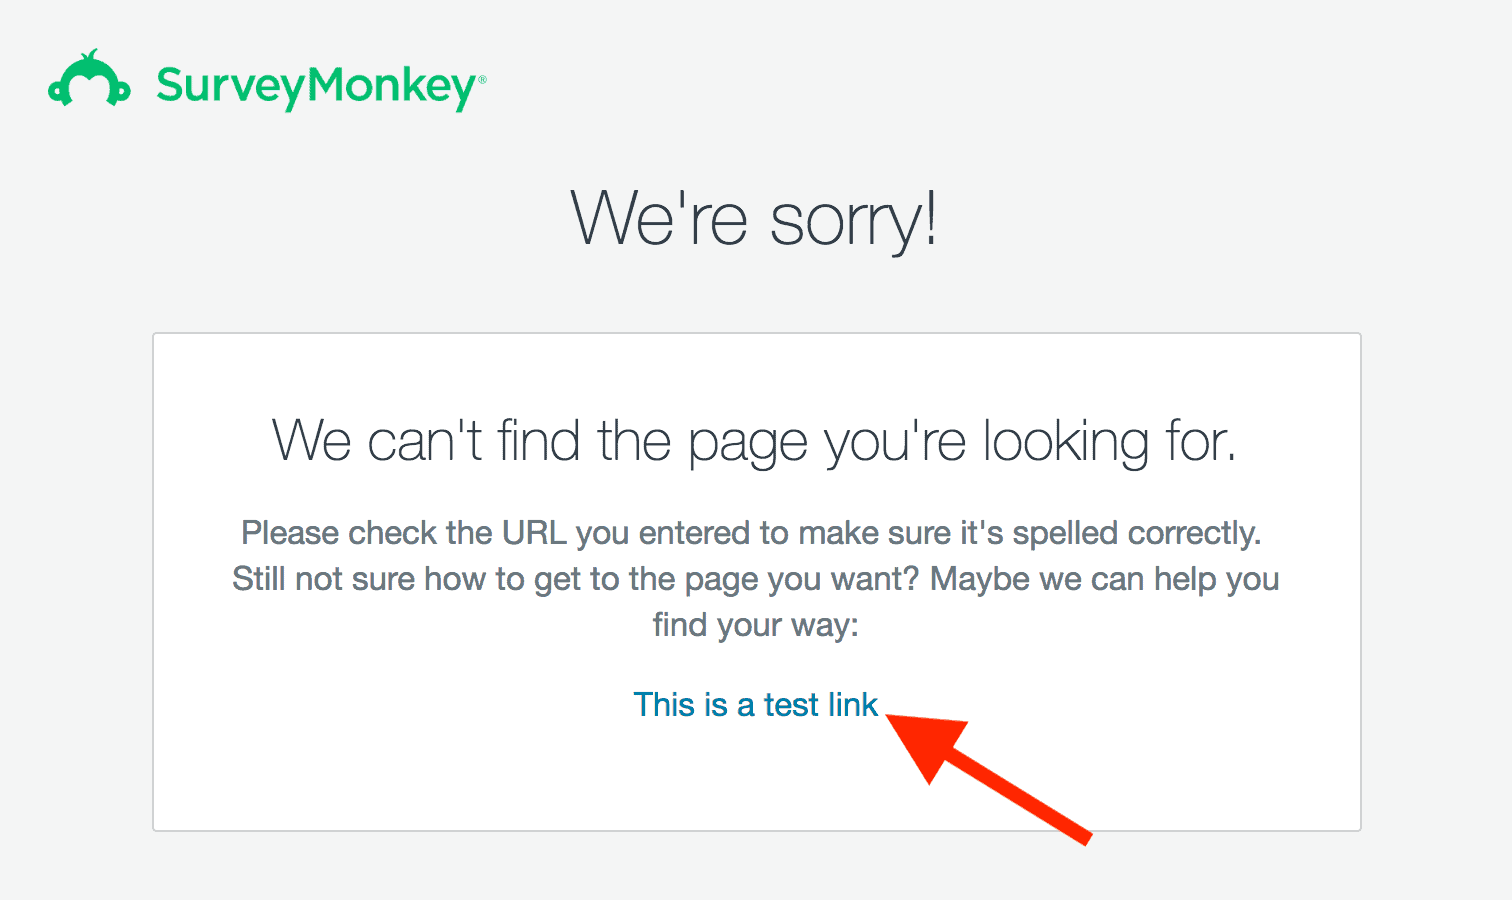 SurveyMonkey – 404 page with link